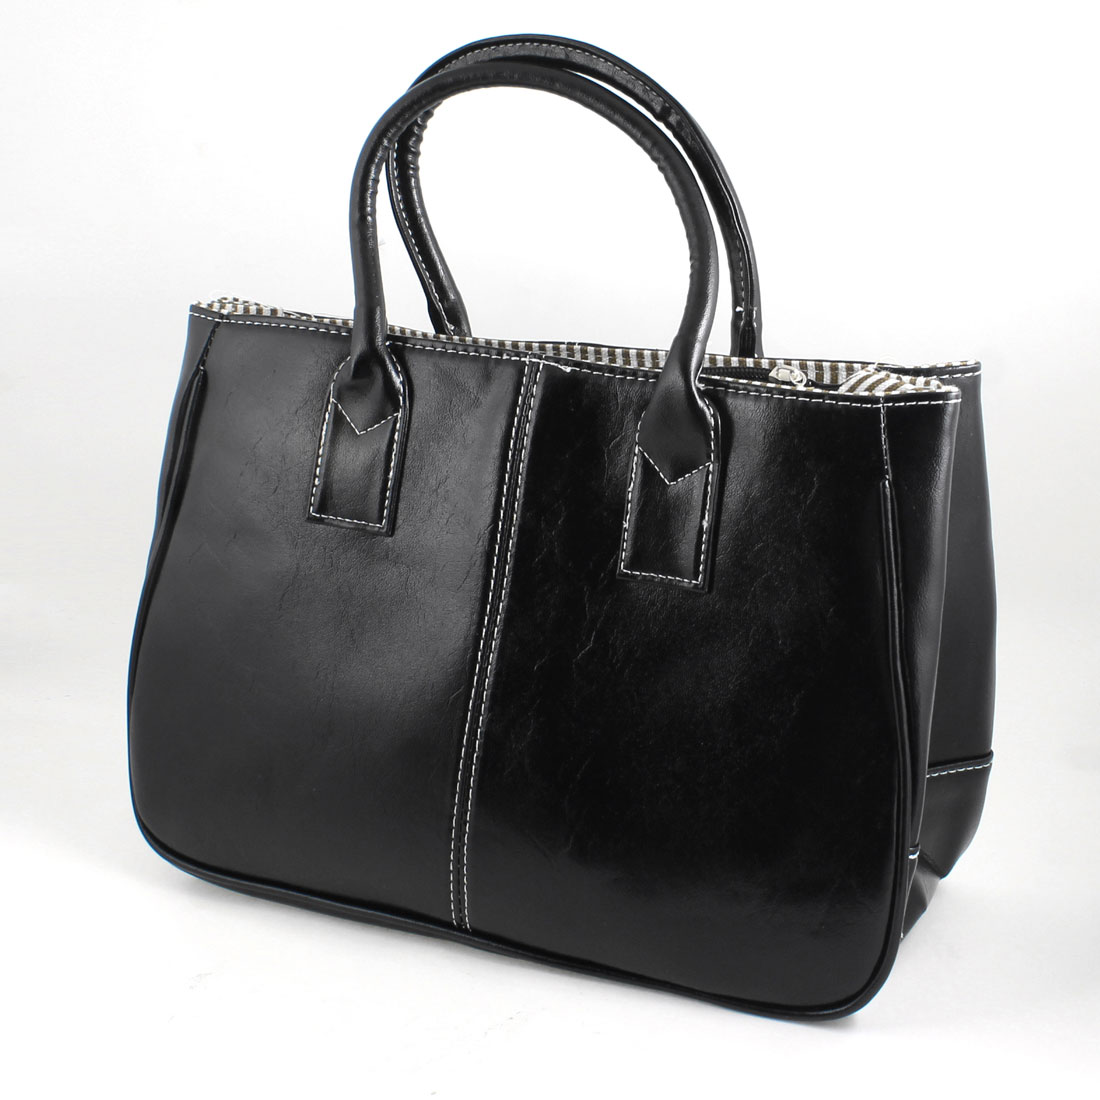 Faux Leather Magnetic Button Closure Tote Bag Handbag Black for Women